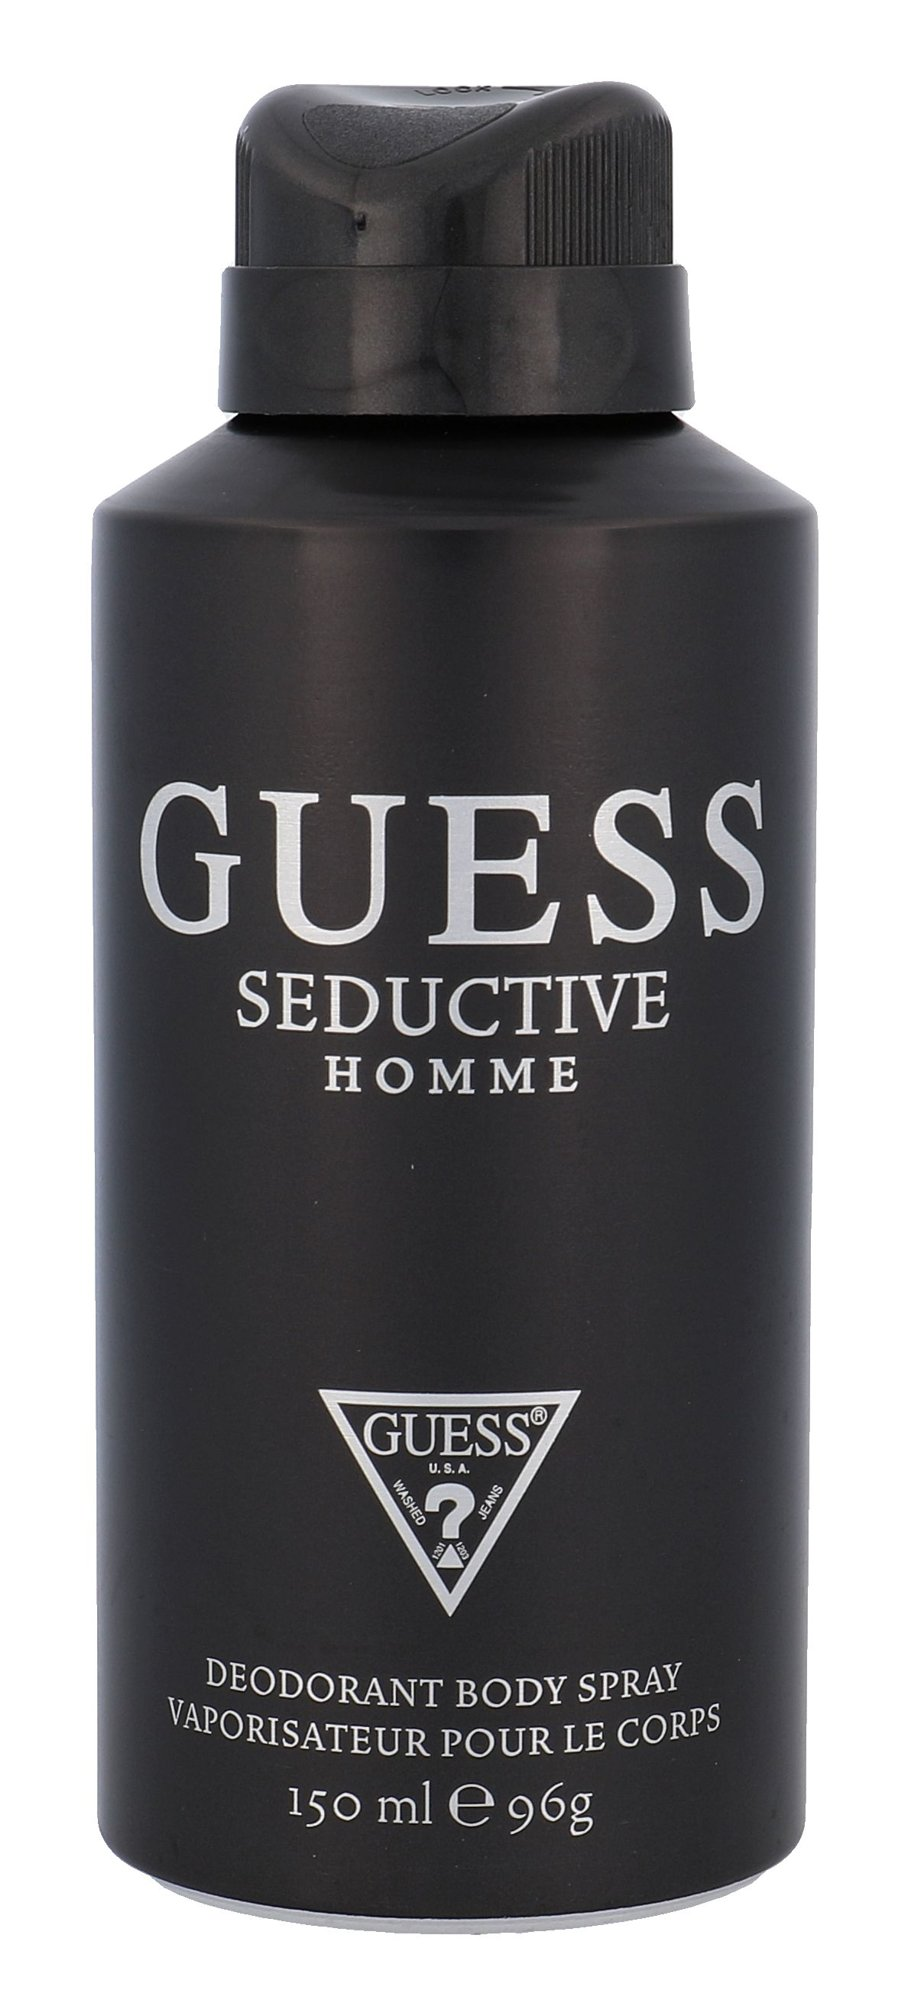 GUESS Seductive Deodorant 150ml